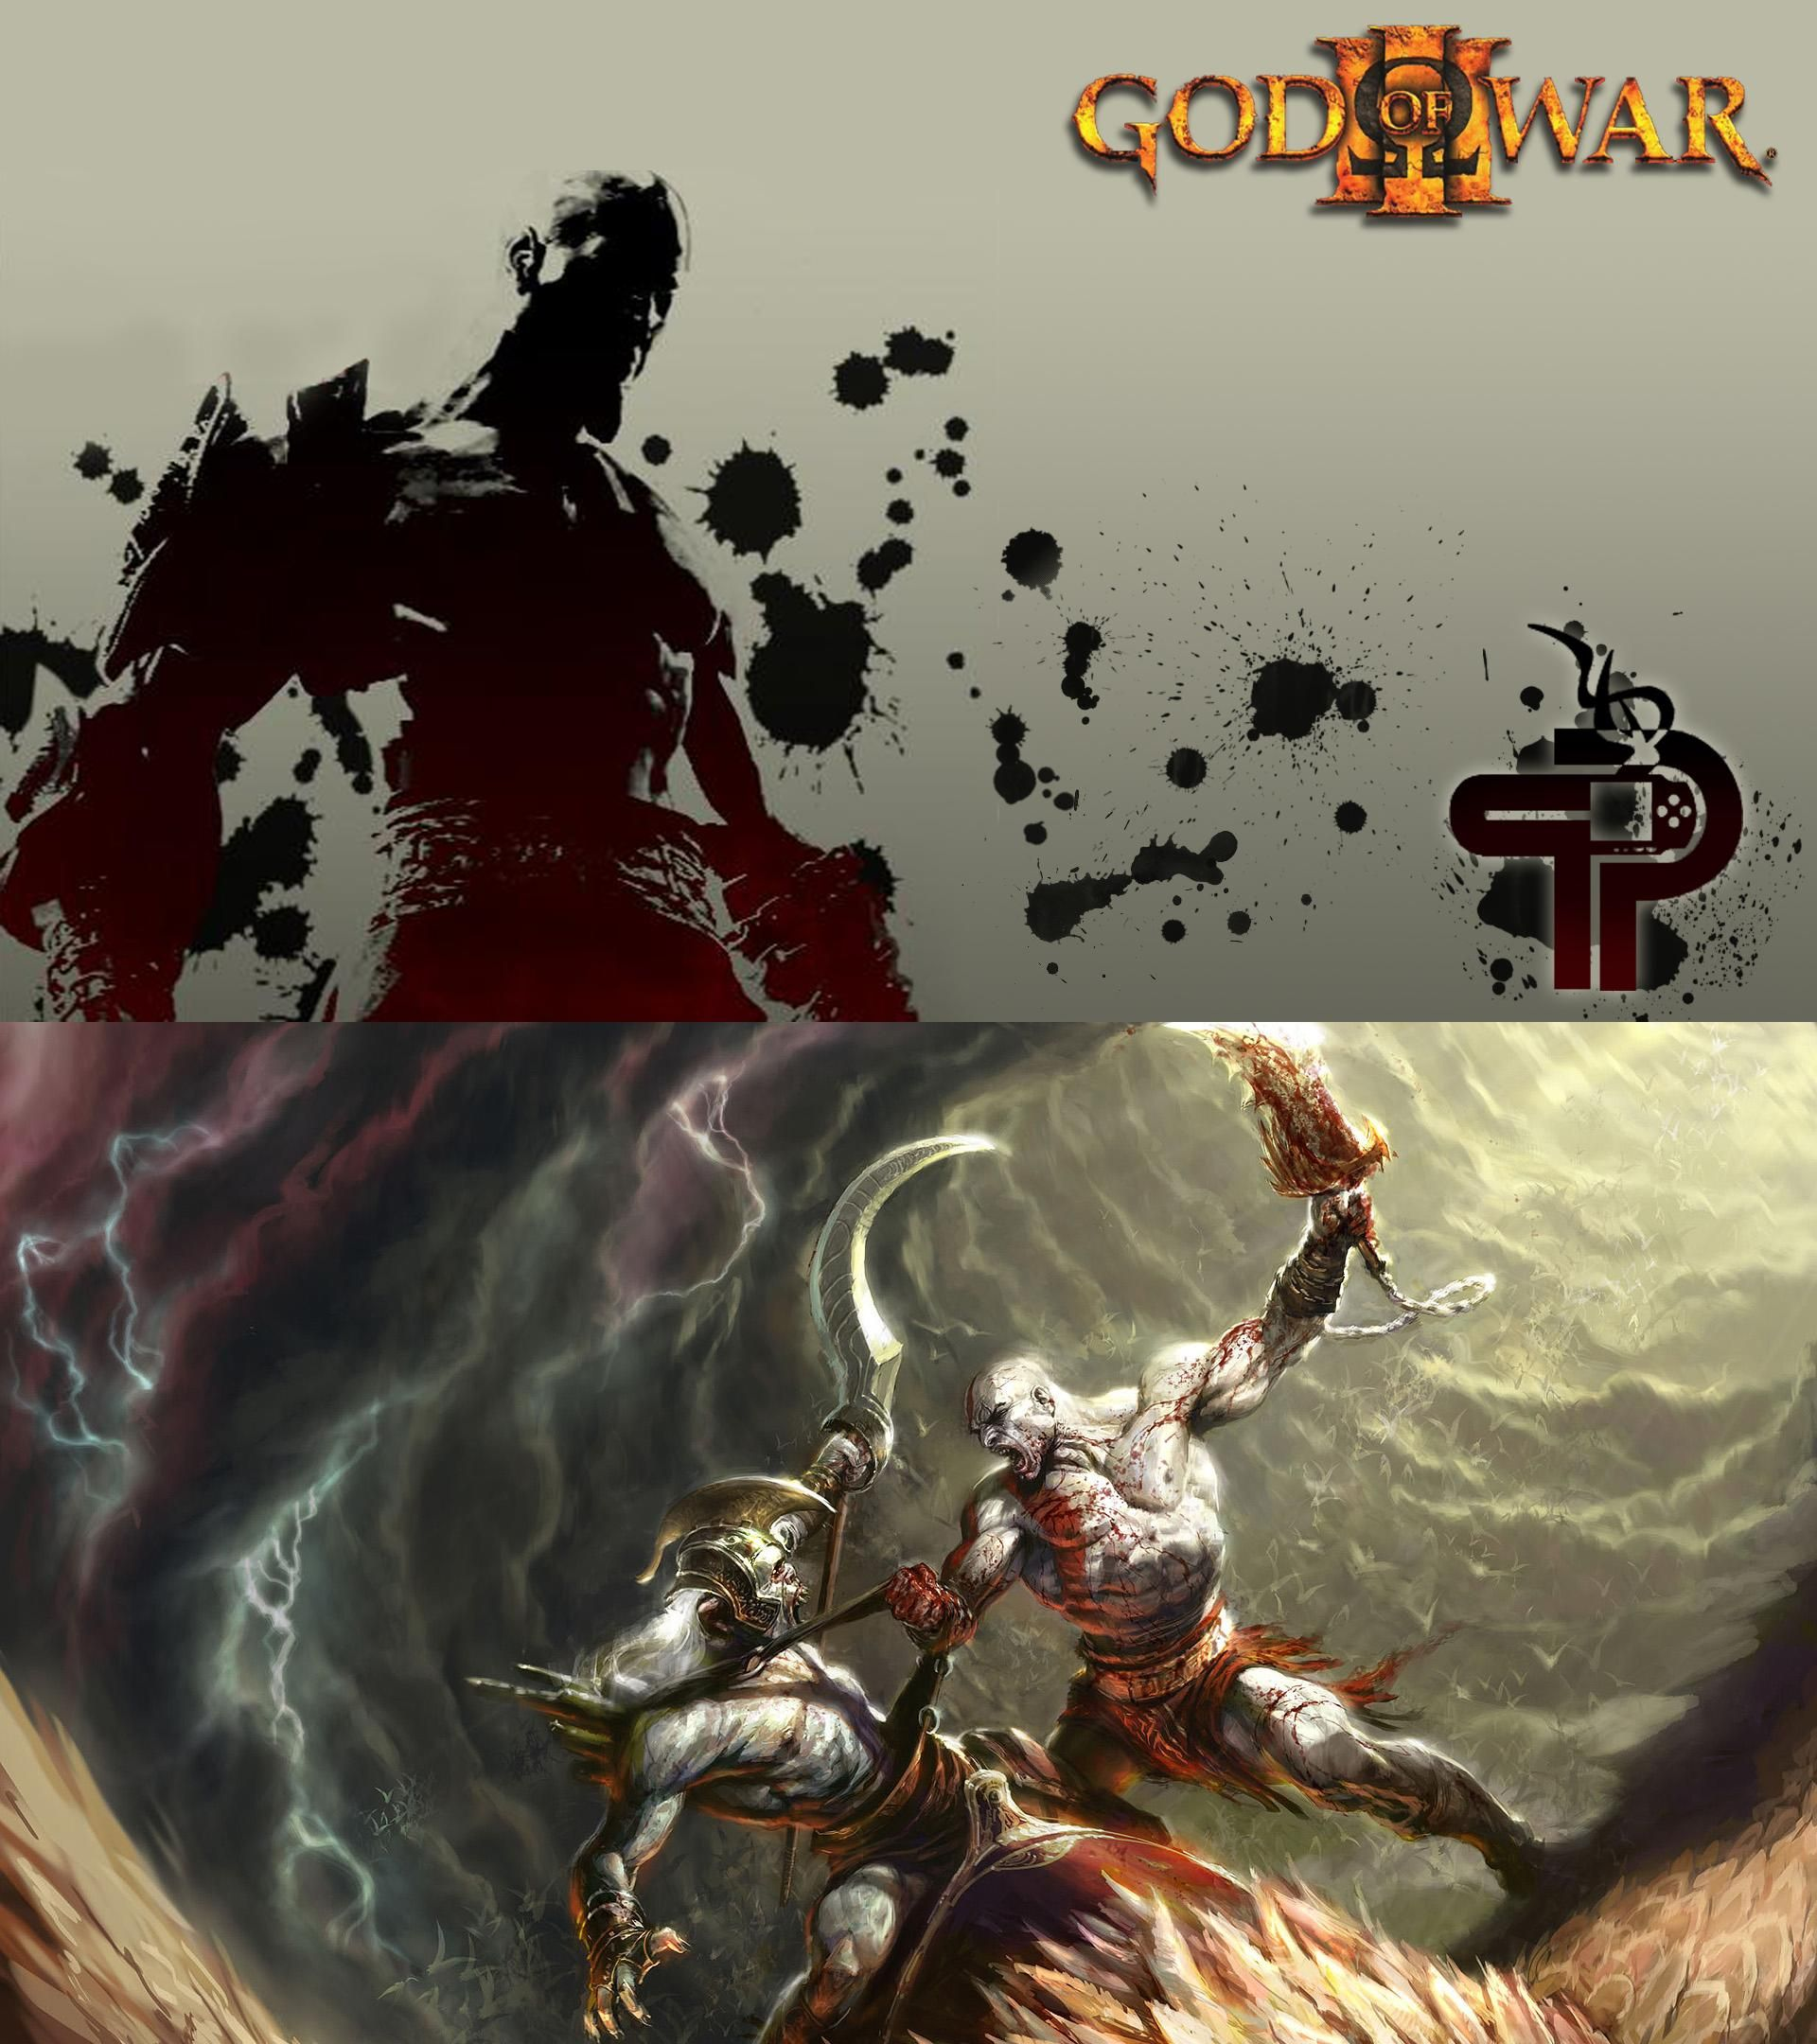 images, kratos, wallpapers, actual